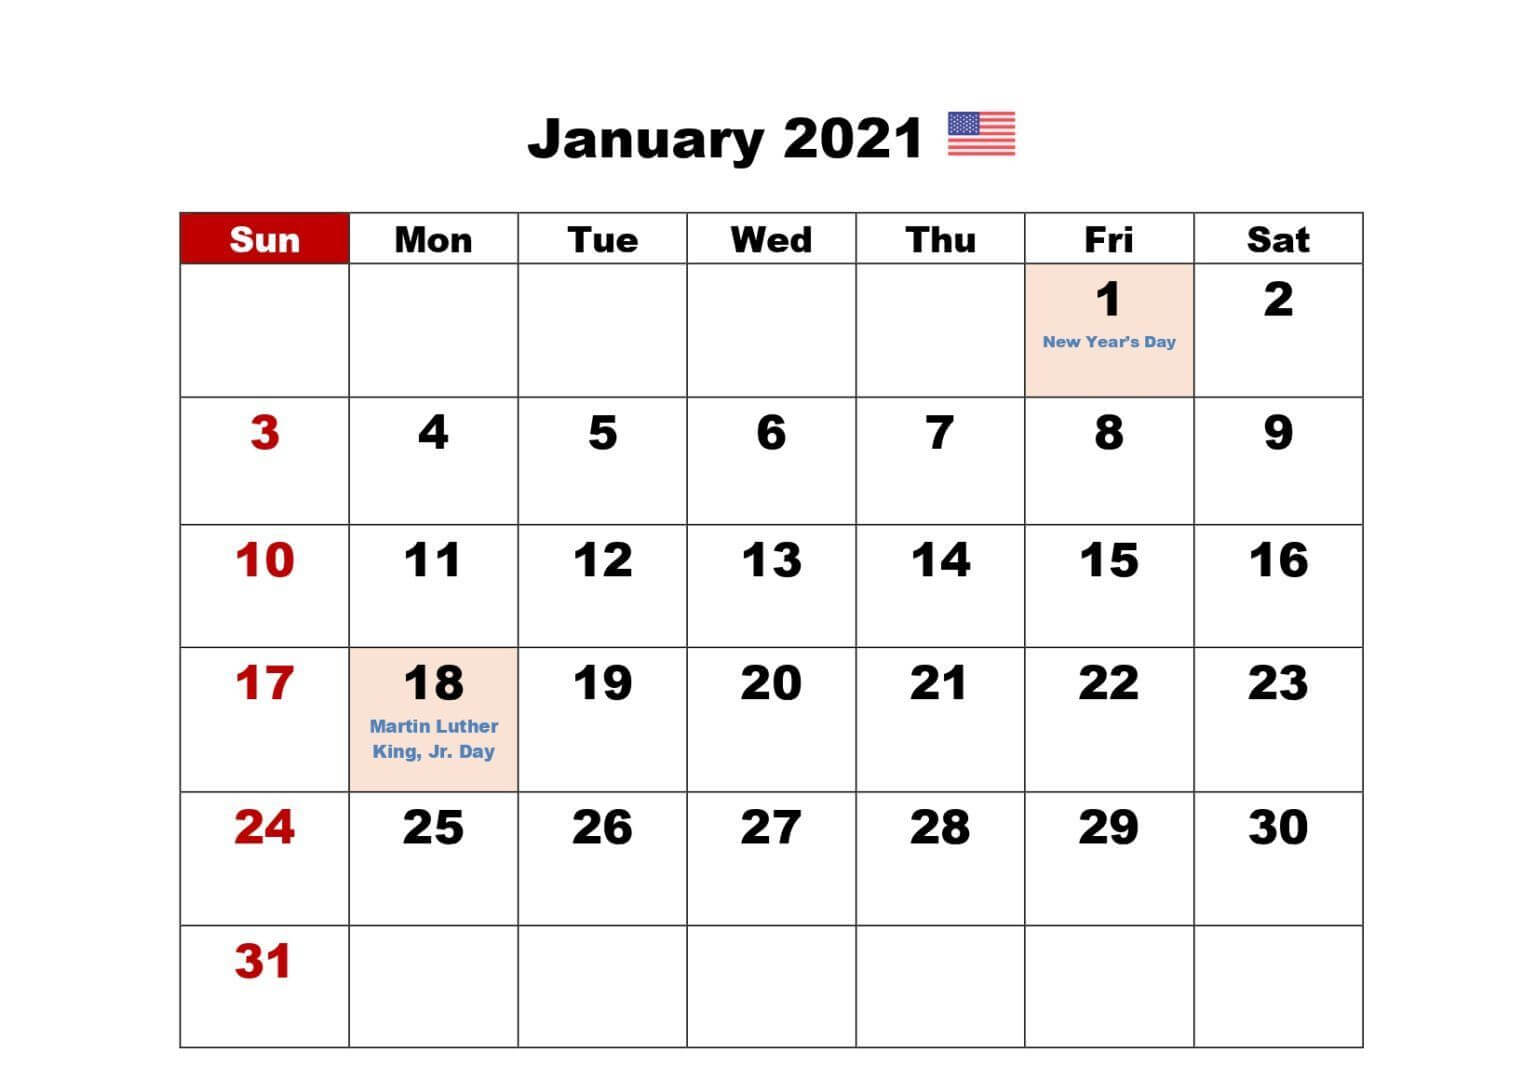 January 2021 USA Holidays Calendar